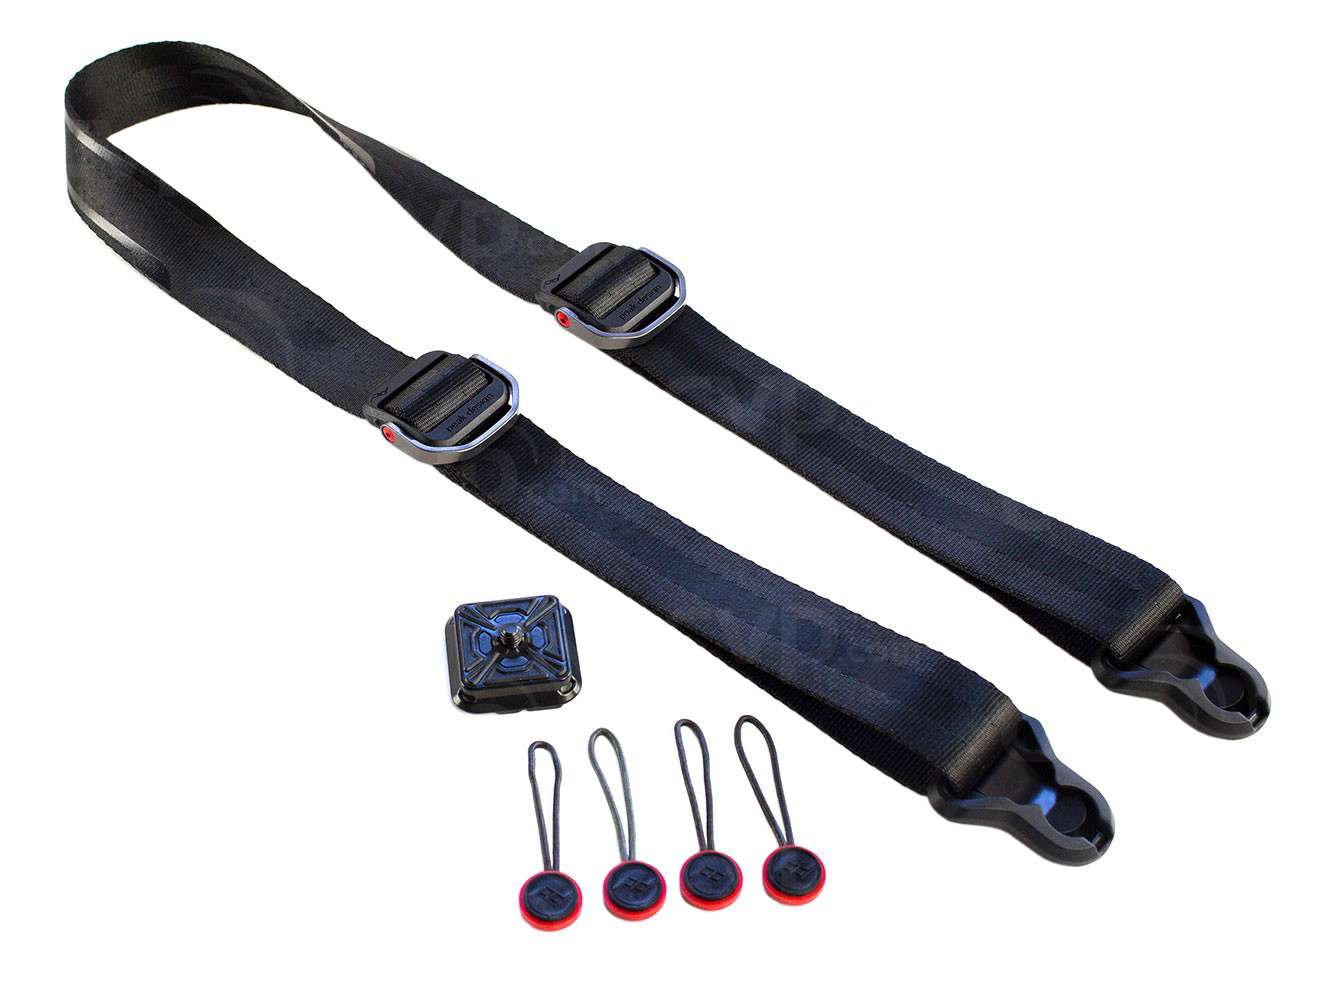 Peak Design SLL-1 (SLL1) Slide Lite Professional Camera Strap